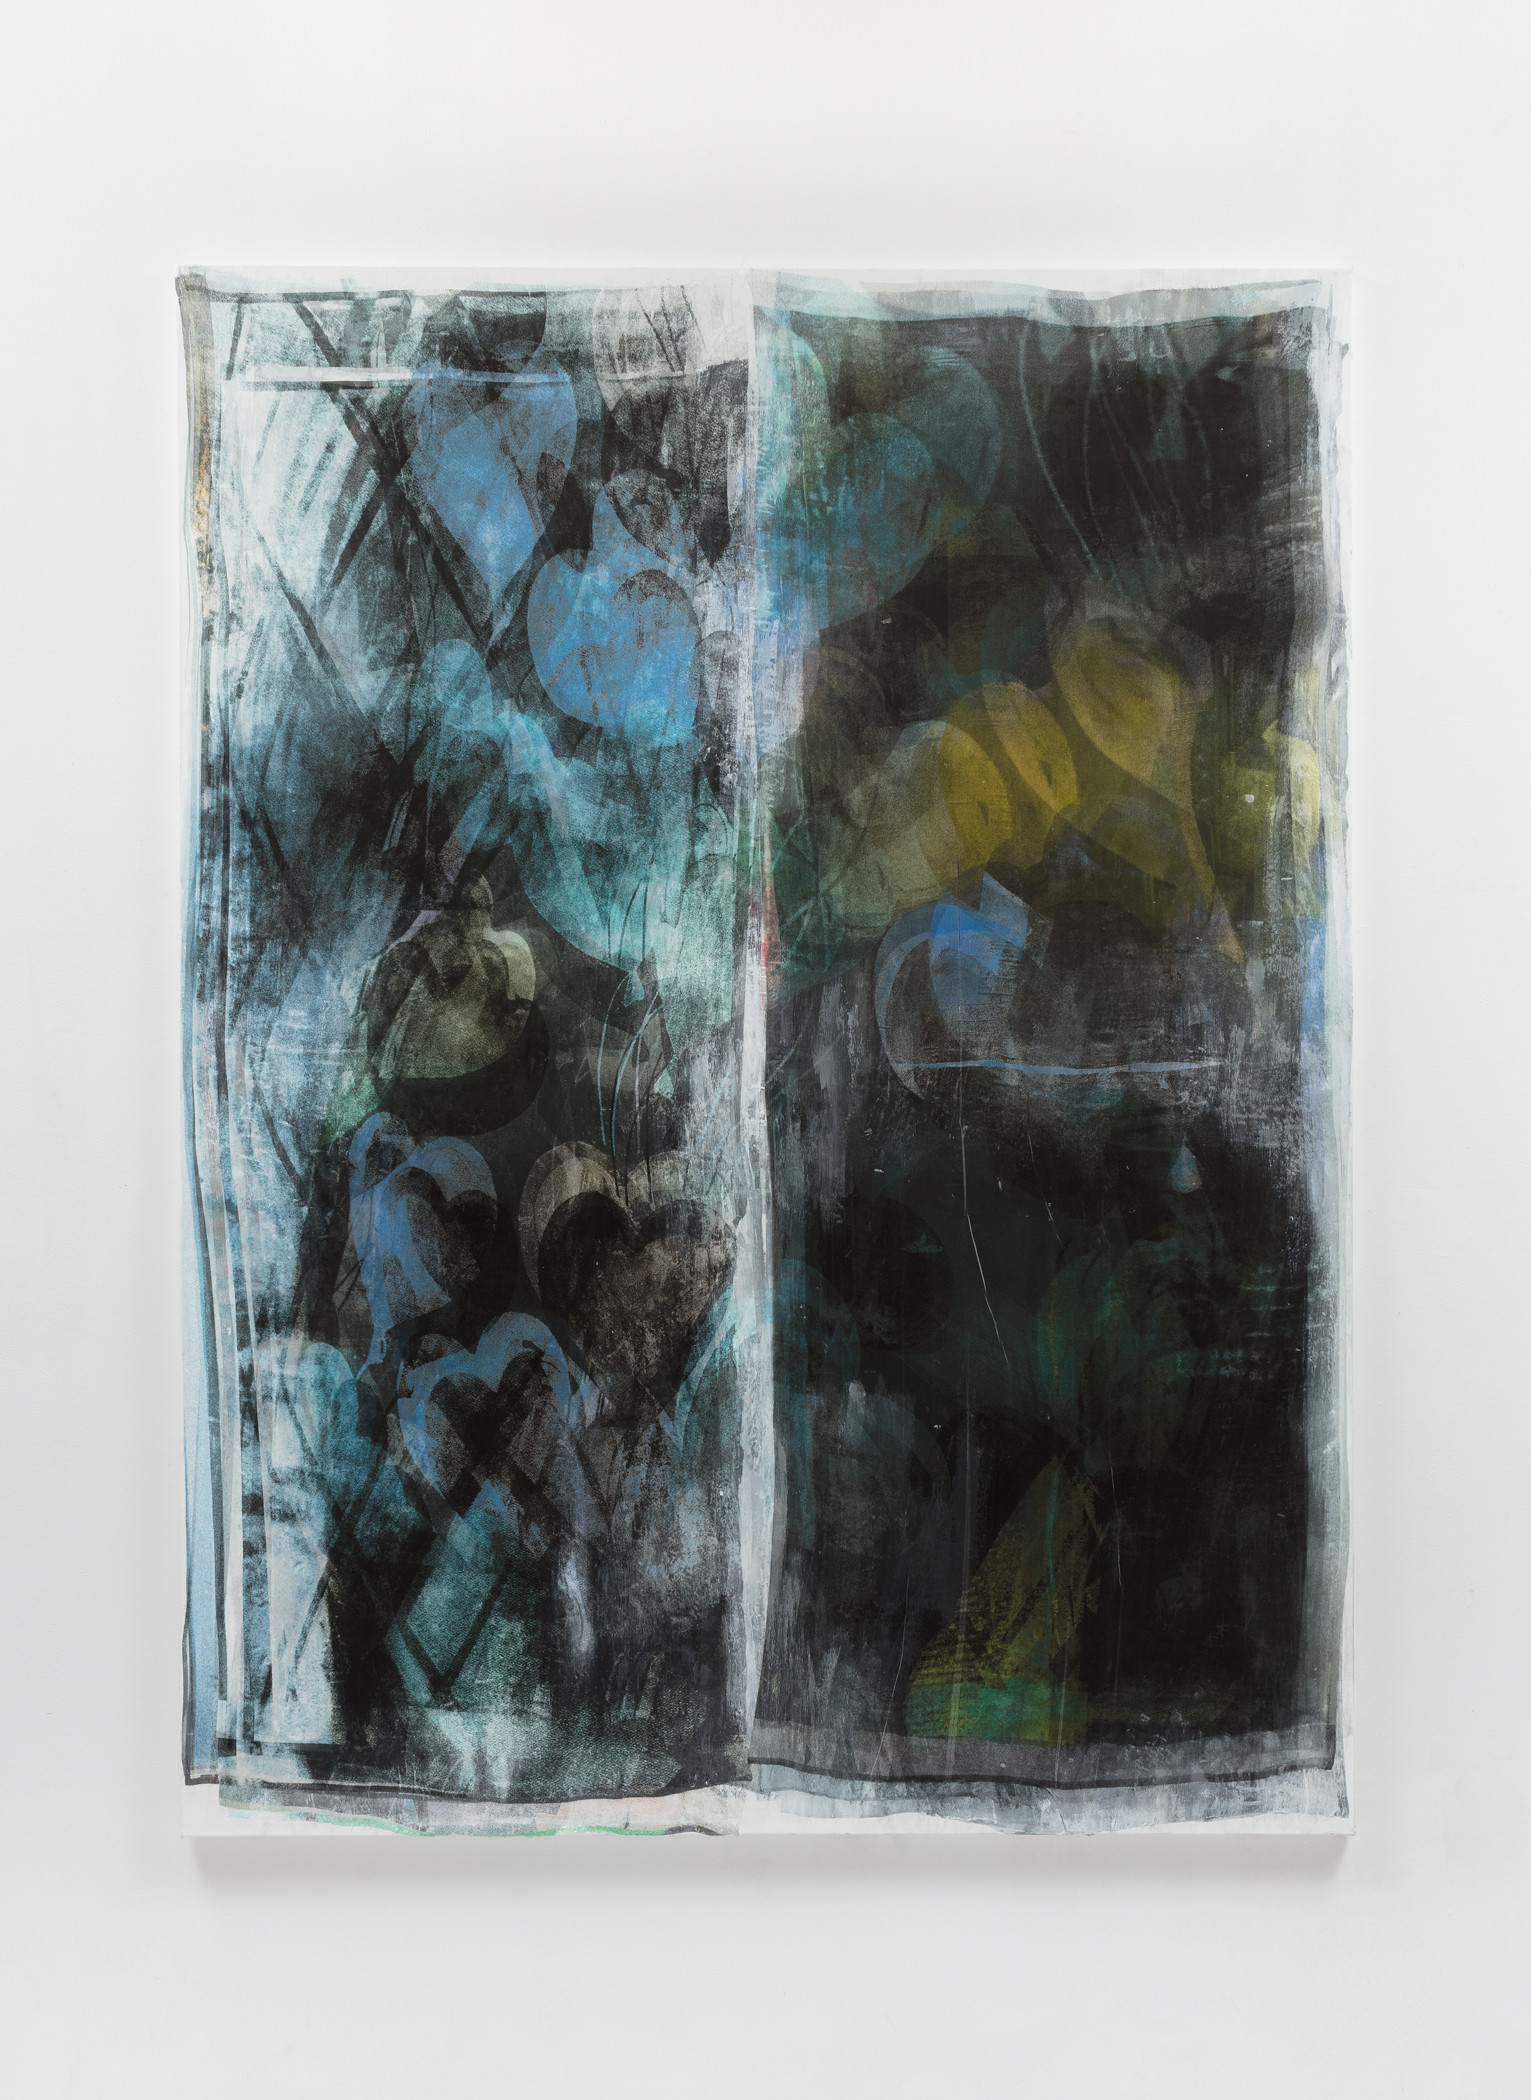 Dead Language, 2018 UltraChrome ink, silk, acrylic on linen  96 x 72 inches